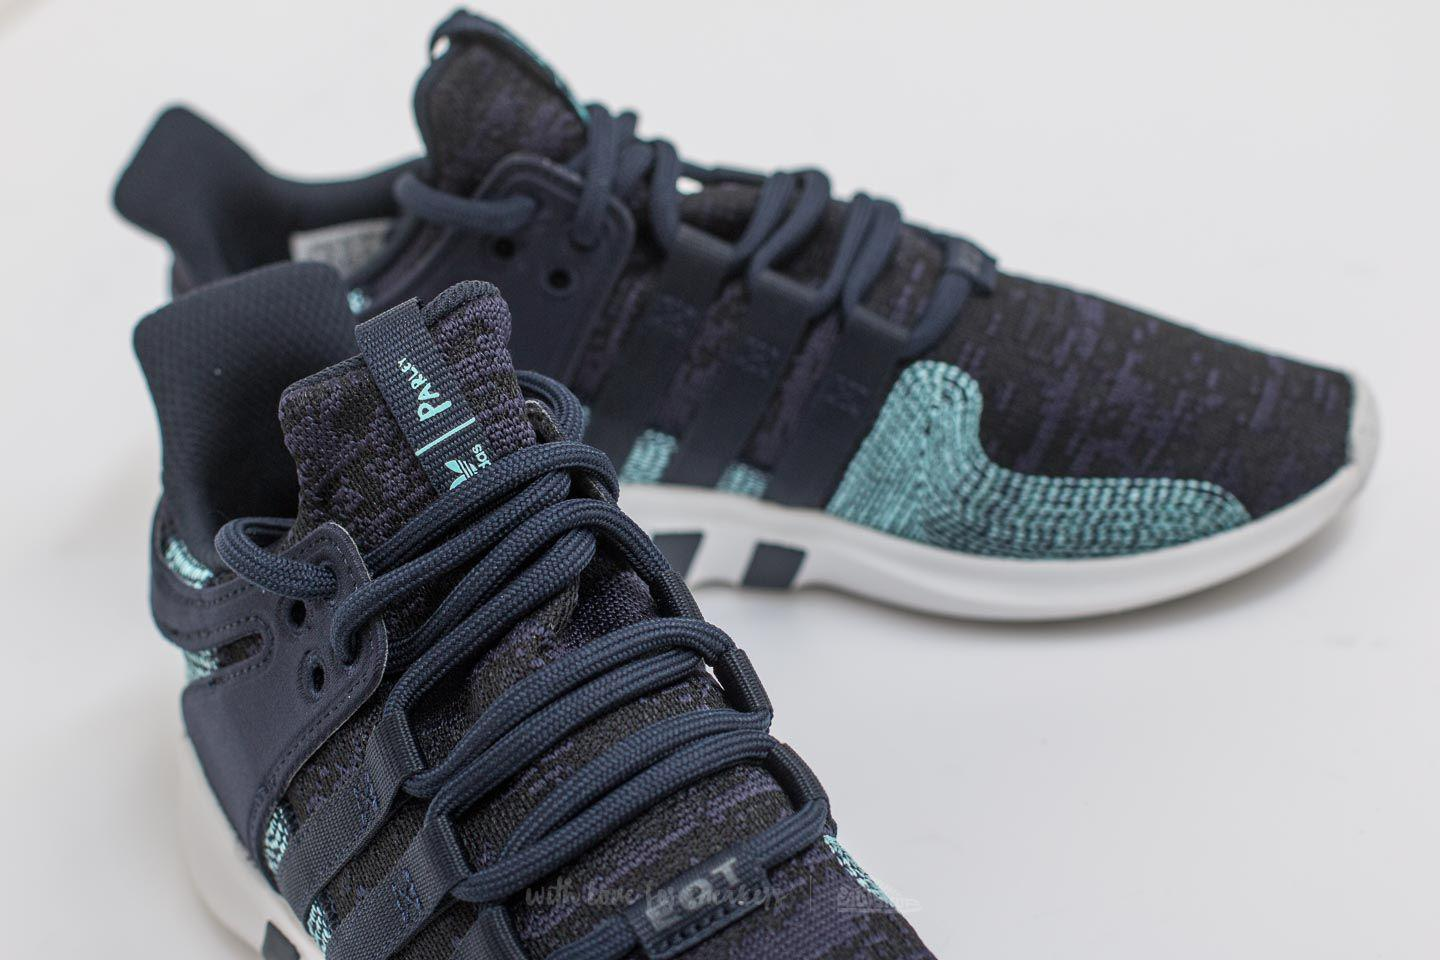 Lyst - adidas Originals Adidas Eqt Support Adv Ck Parley Legend Ink ... 38917326456b6